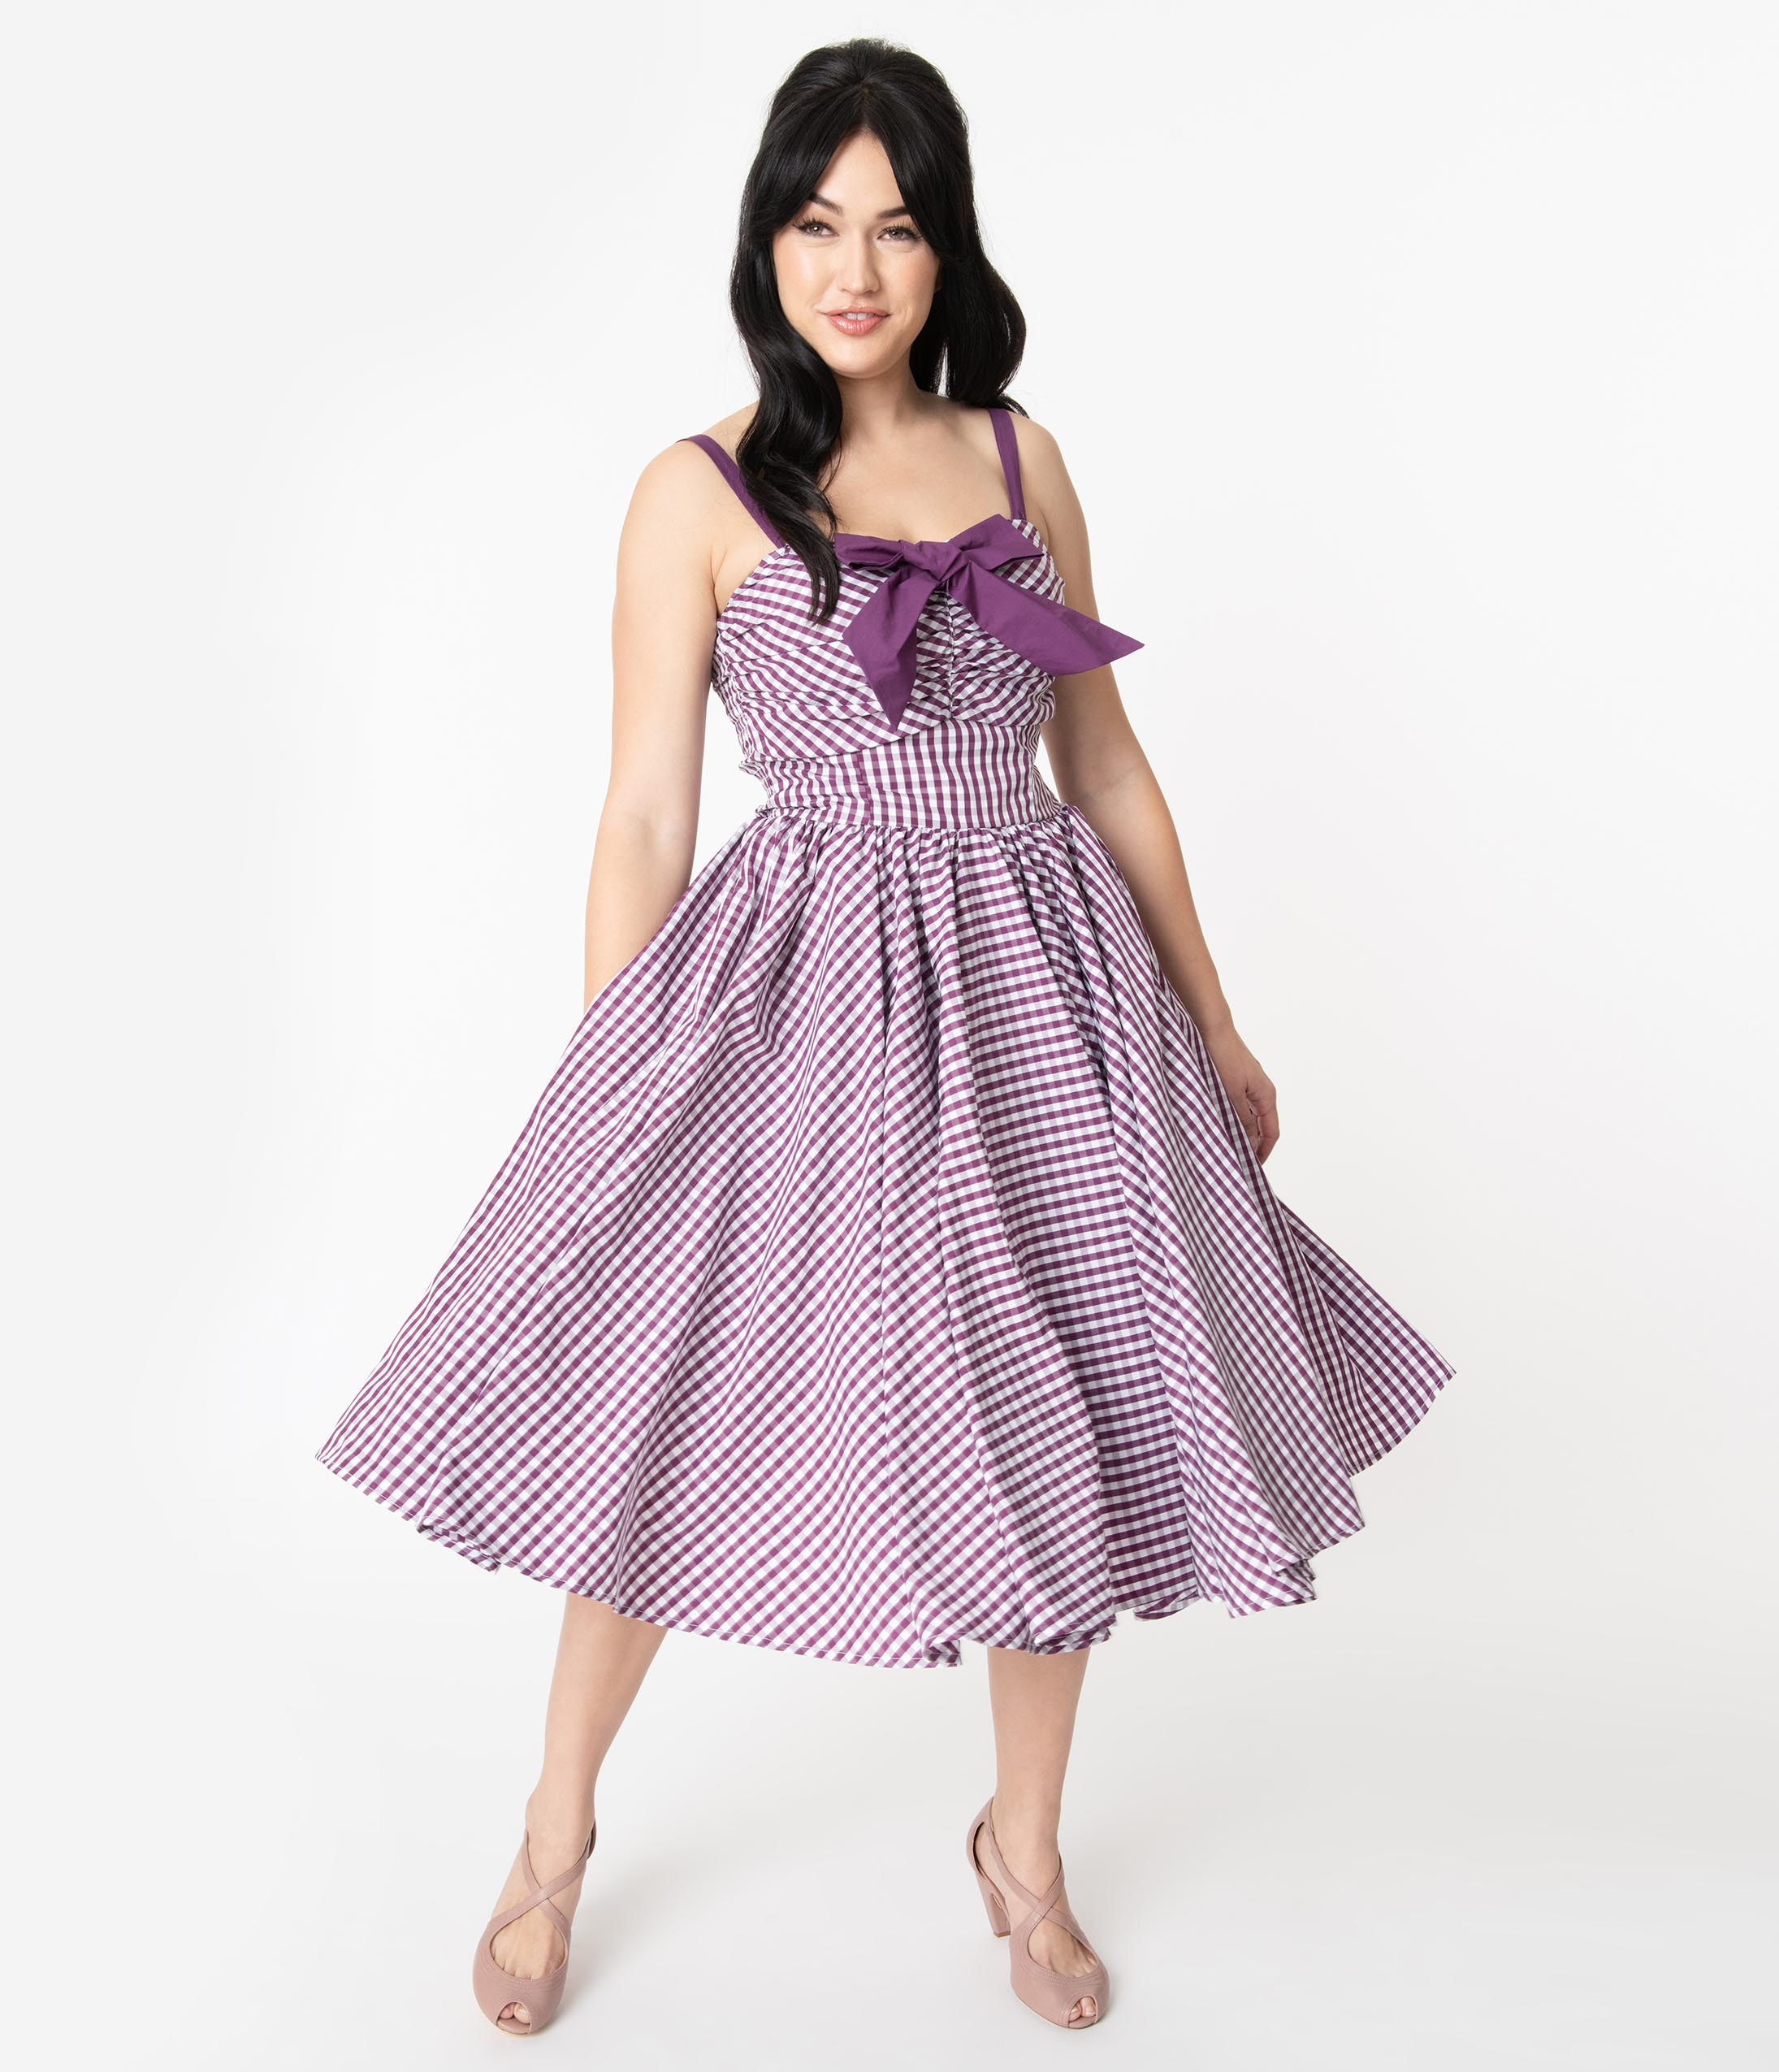 1950s Dresses, 50s Dresses | 1950s Style Dresses Unique Vintage 1950S Purple Gingham Golightly Swing Dress $88.00 AT vintagedancer.com